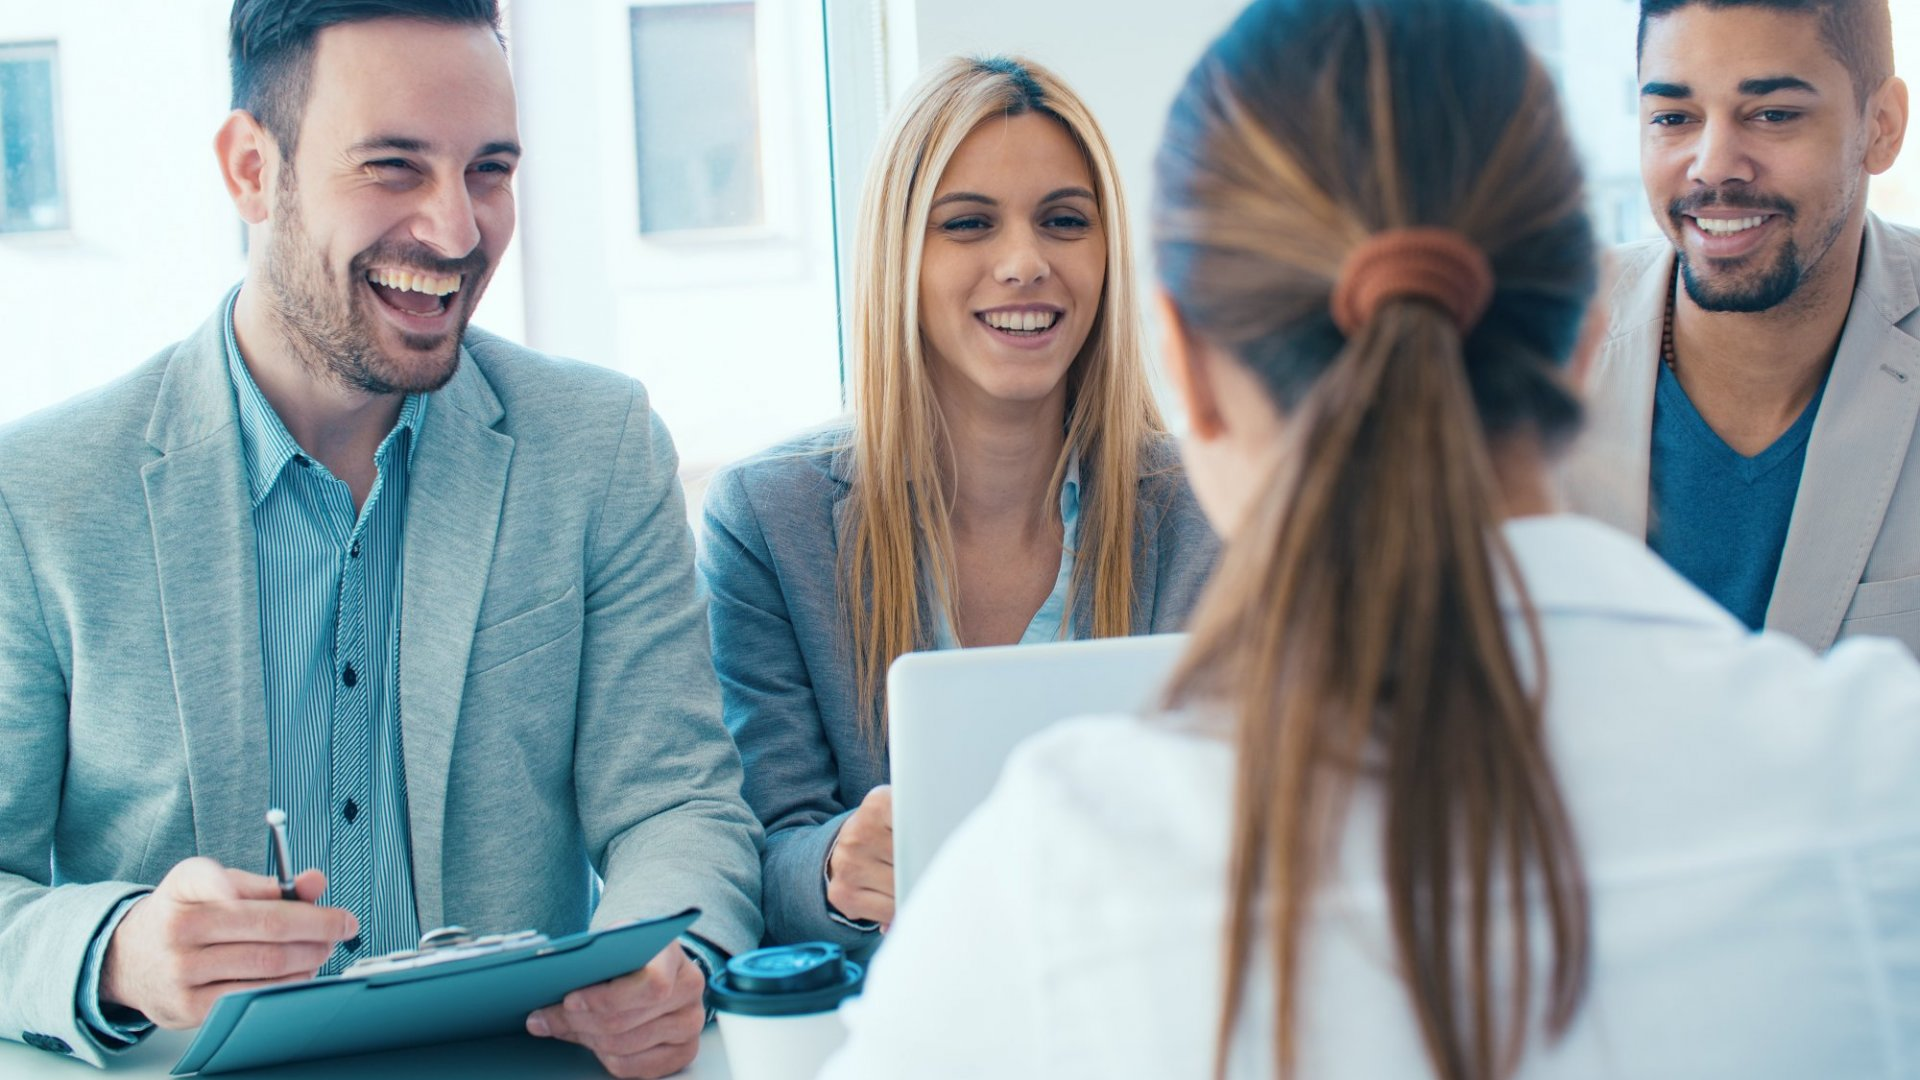 Why Group Job Interviews Are Getting Insanely Popular (and How to Make Sure You Nail One)